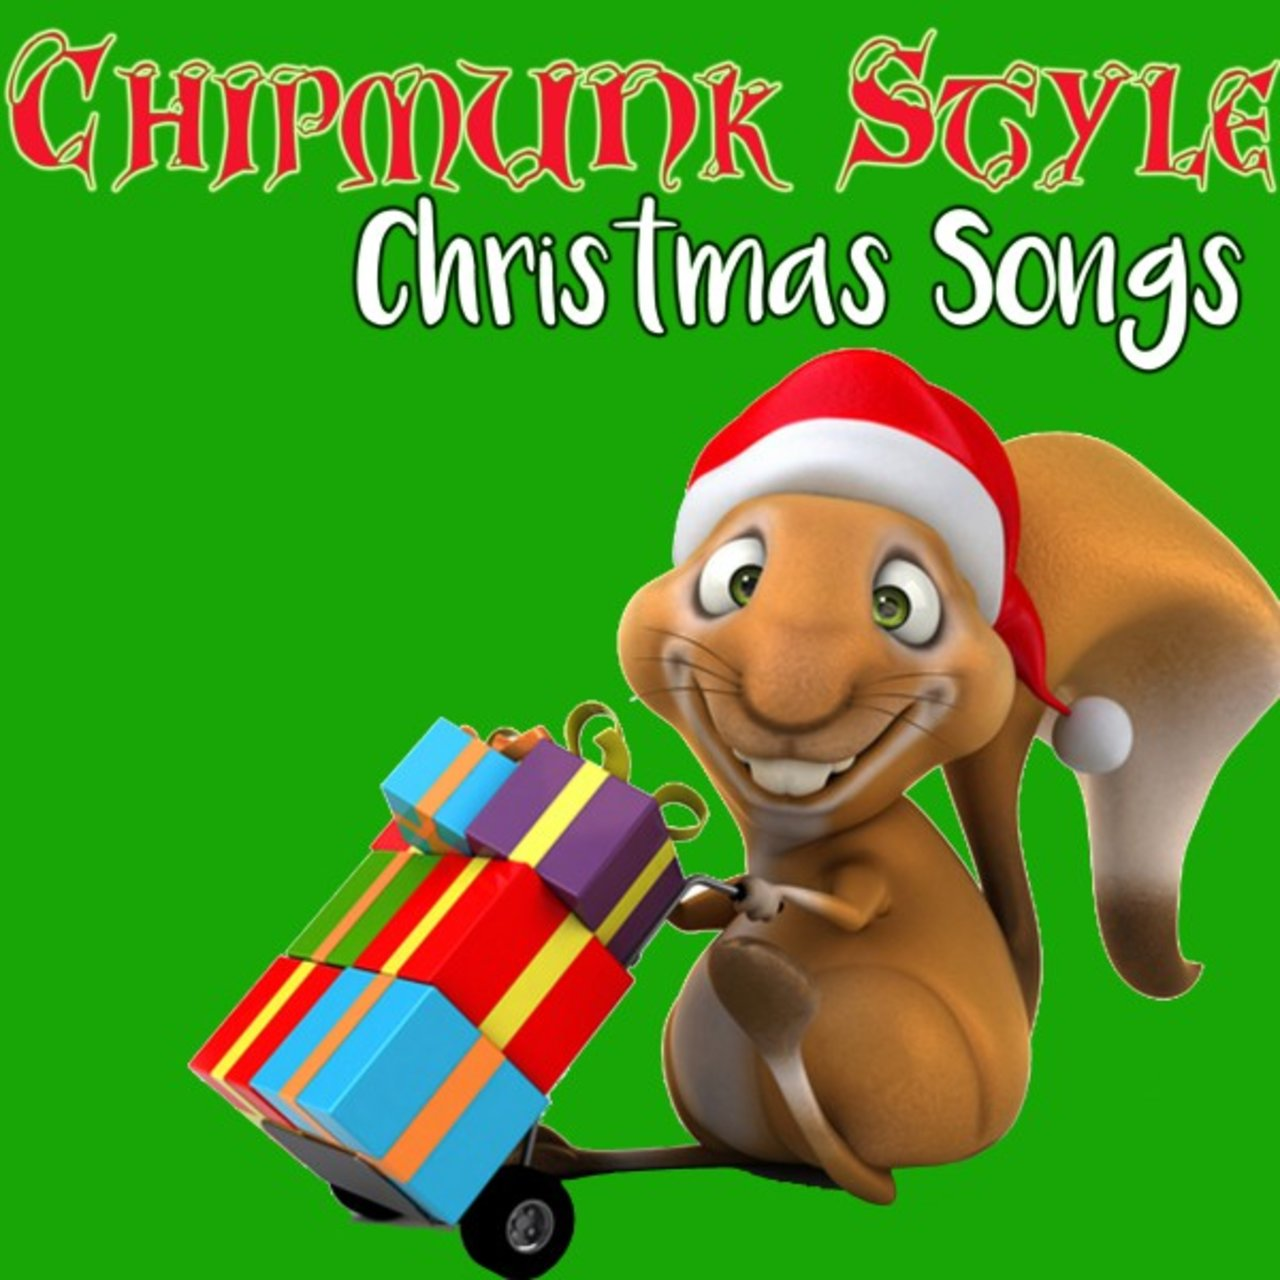 TIDAL: Listen to Chipmunk Style Christmas Songs on TIDAL